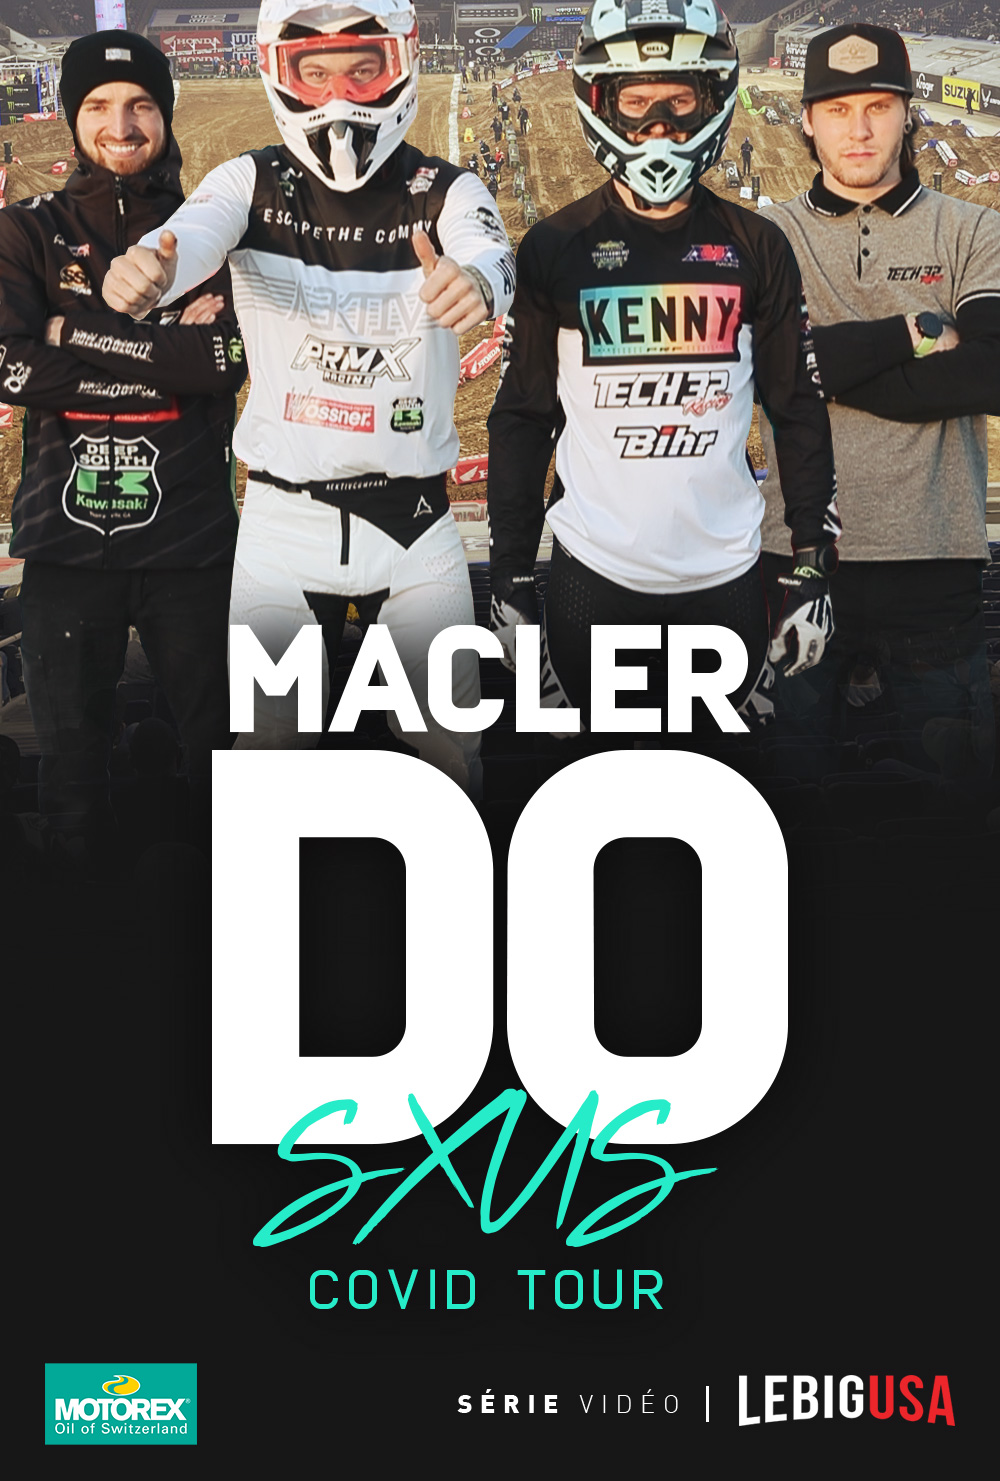 « Inside » Do/Macler SX US Covid Tour